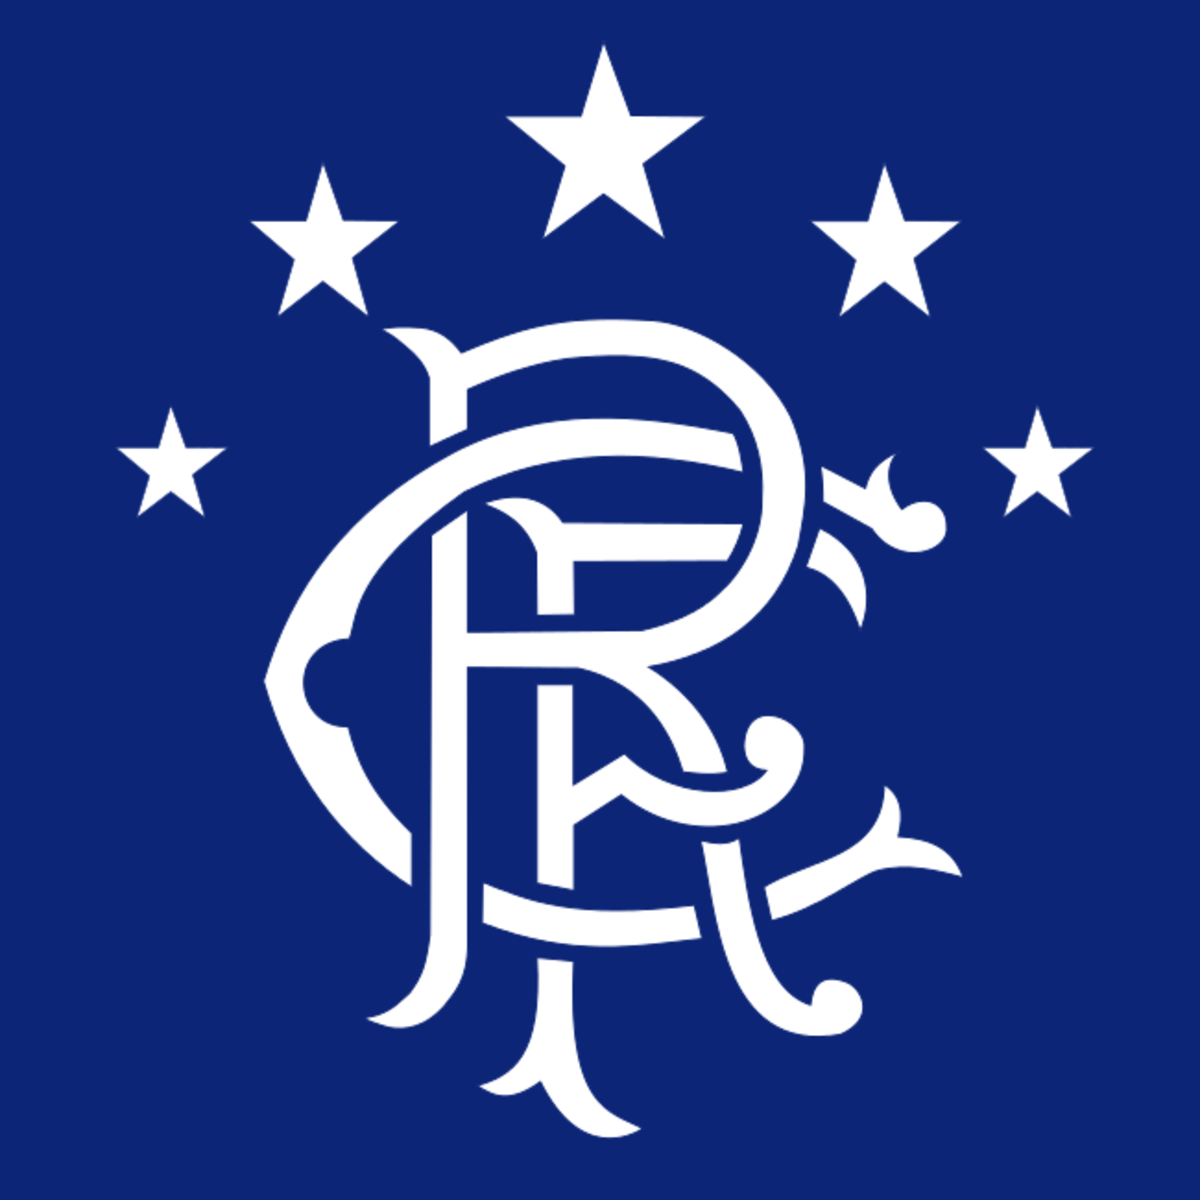 Since 2003 Rangers have won 5 stars alongside their club crest. Each stars symbolizes 10 of the titles they have won.